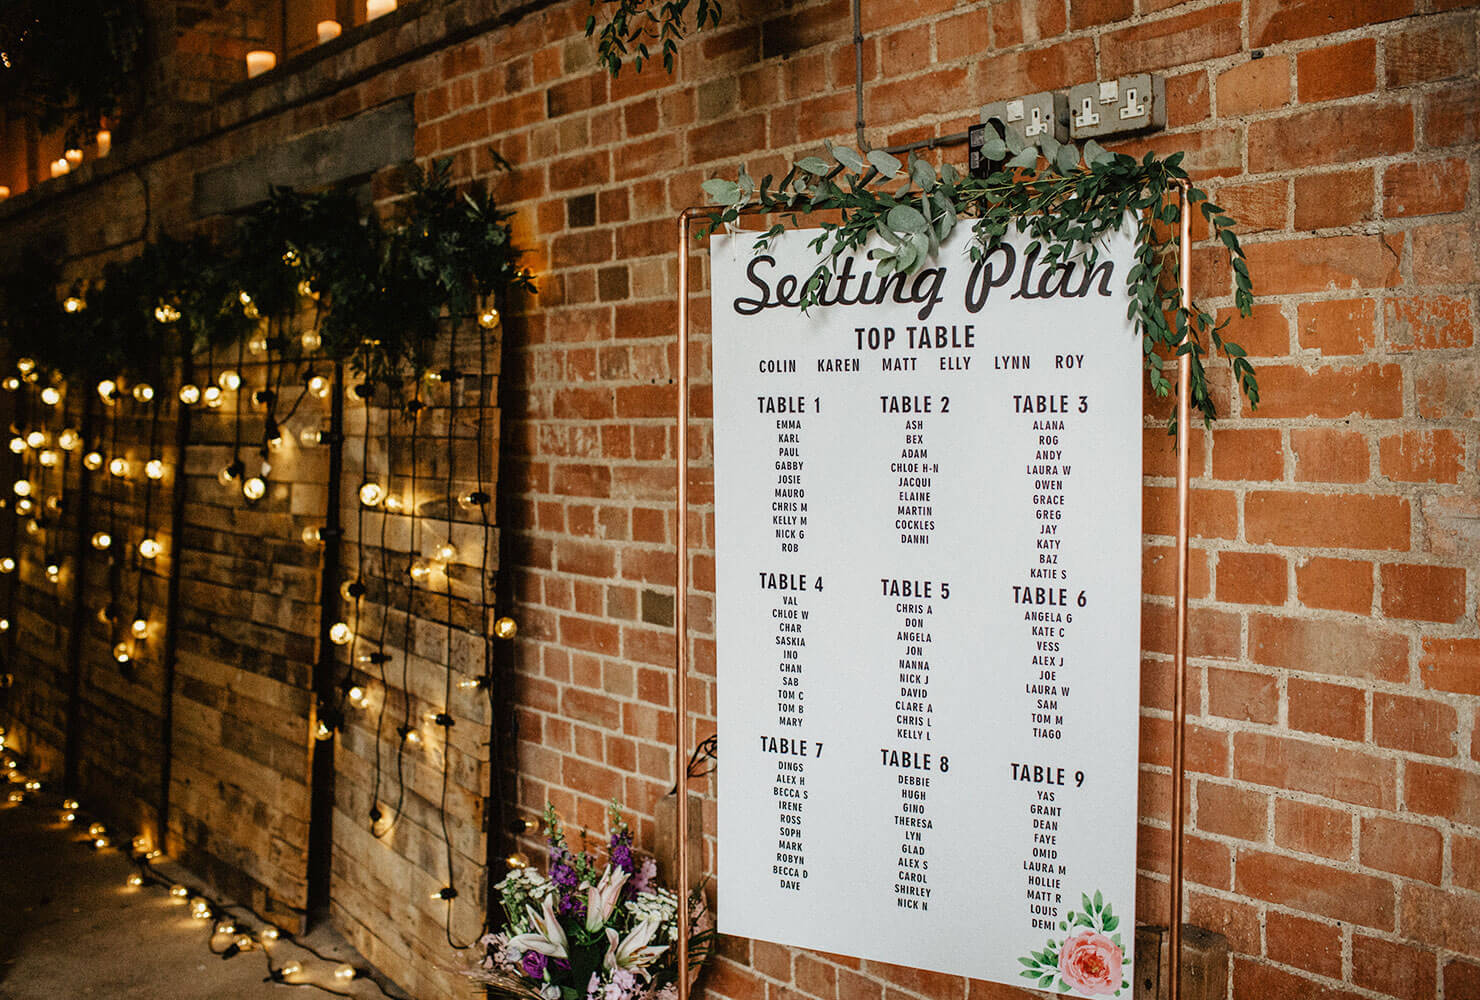 Wedding seating chart on a brick wall decorated with vines and market lights.